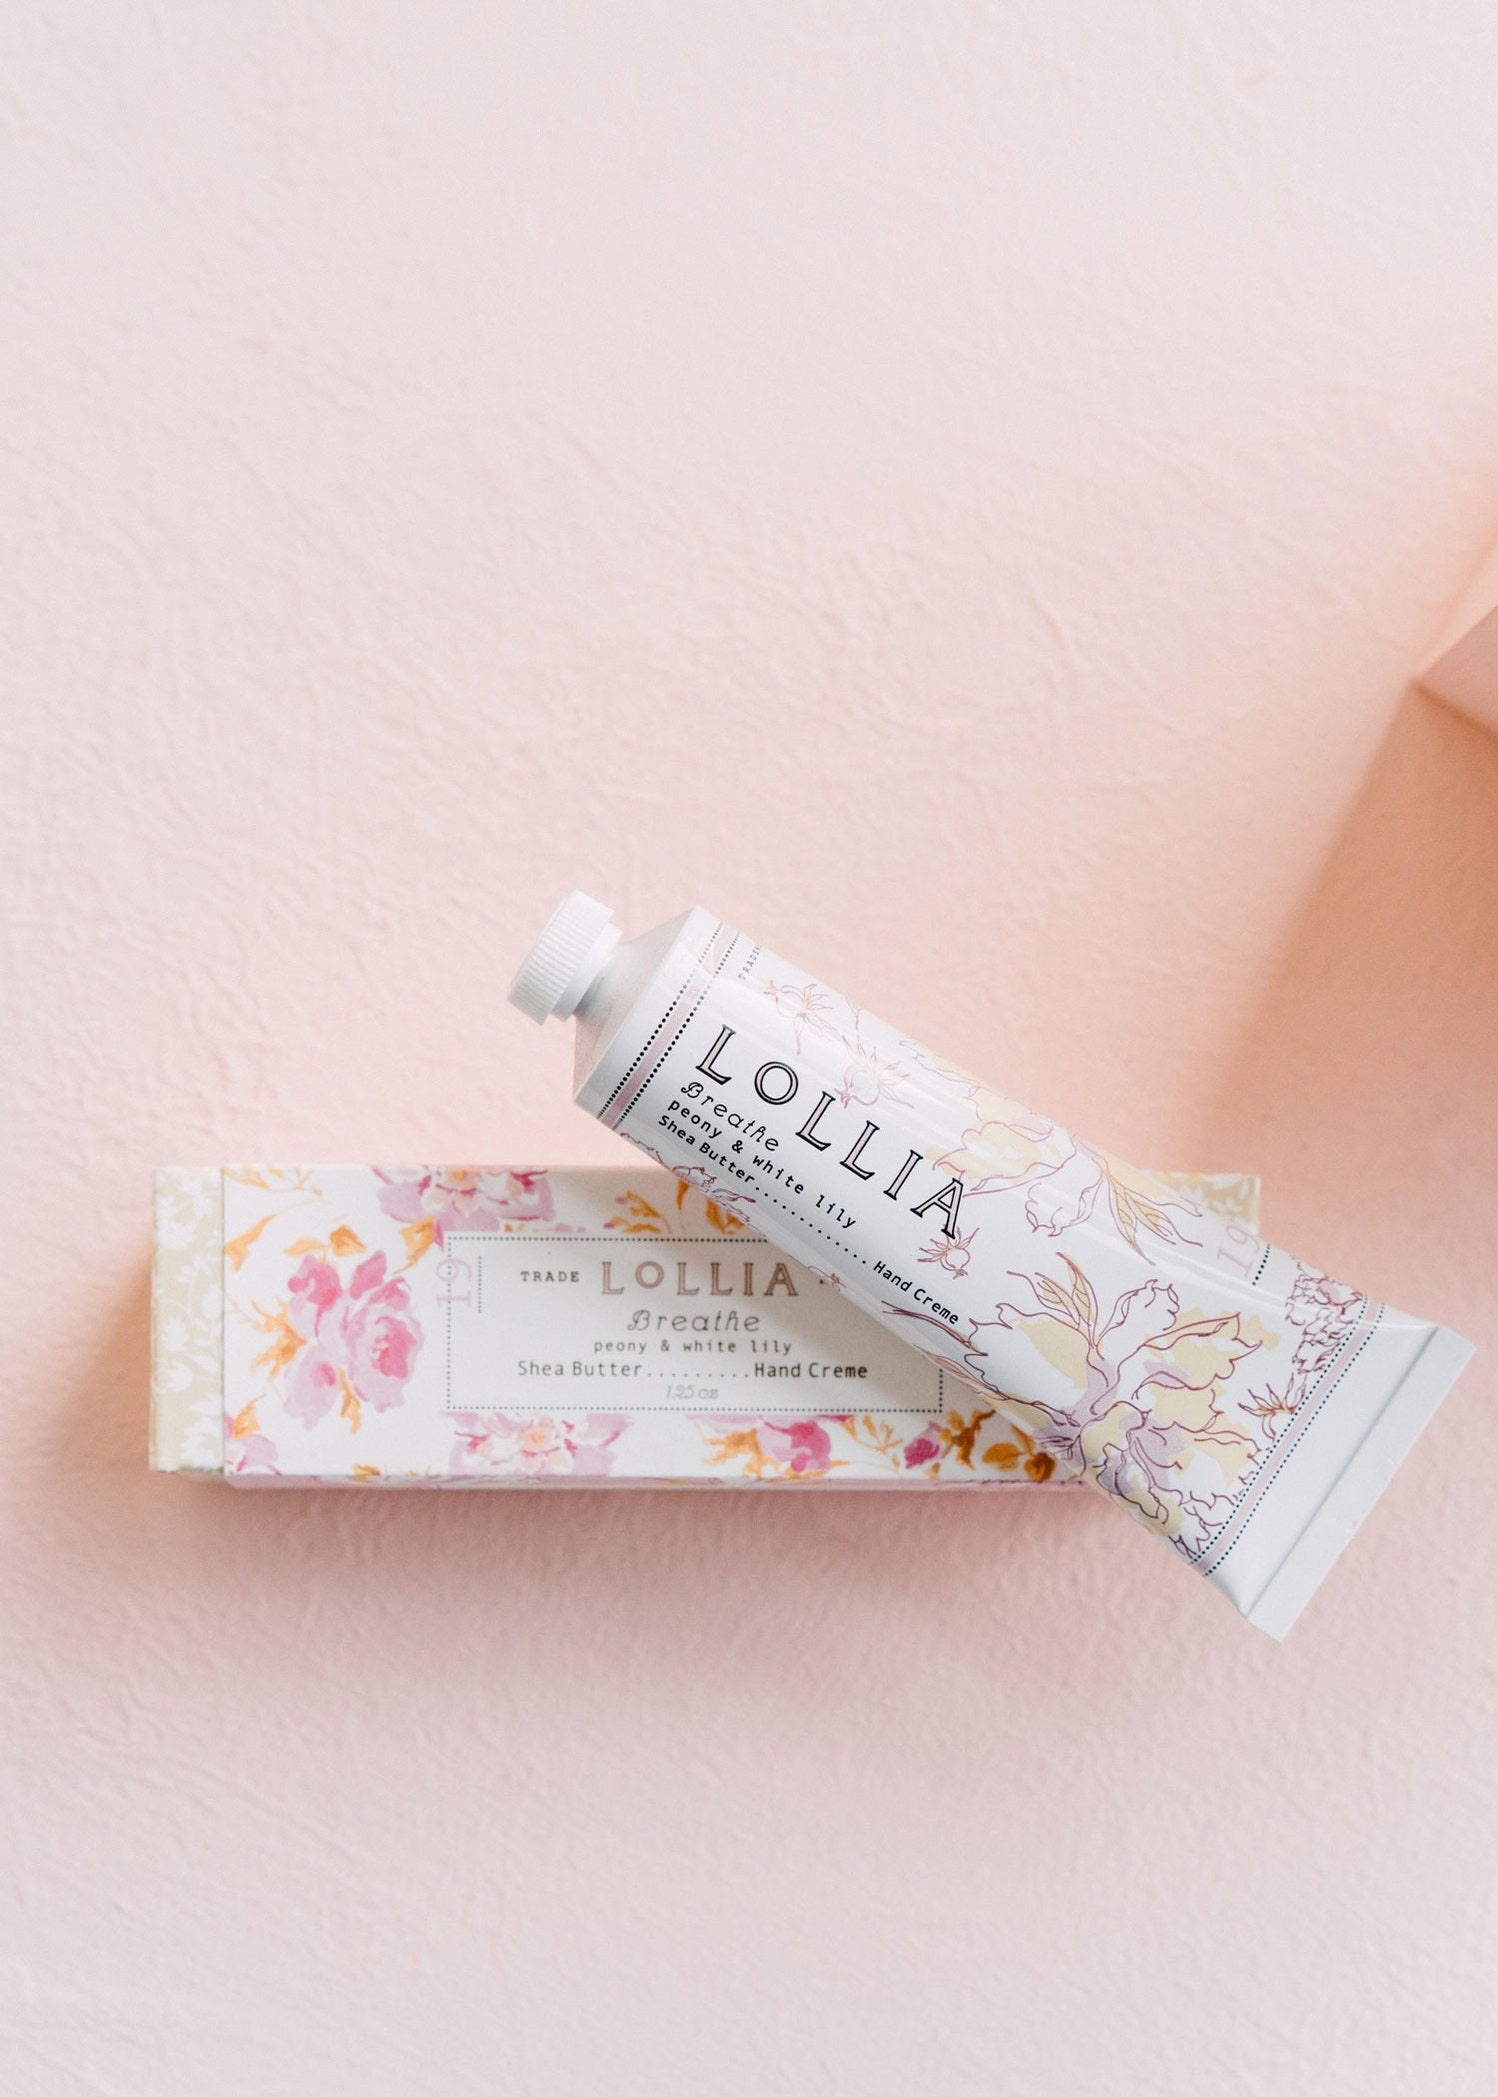 Lollia - Breathe Travel Size Handcreme